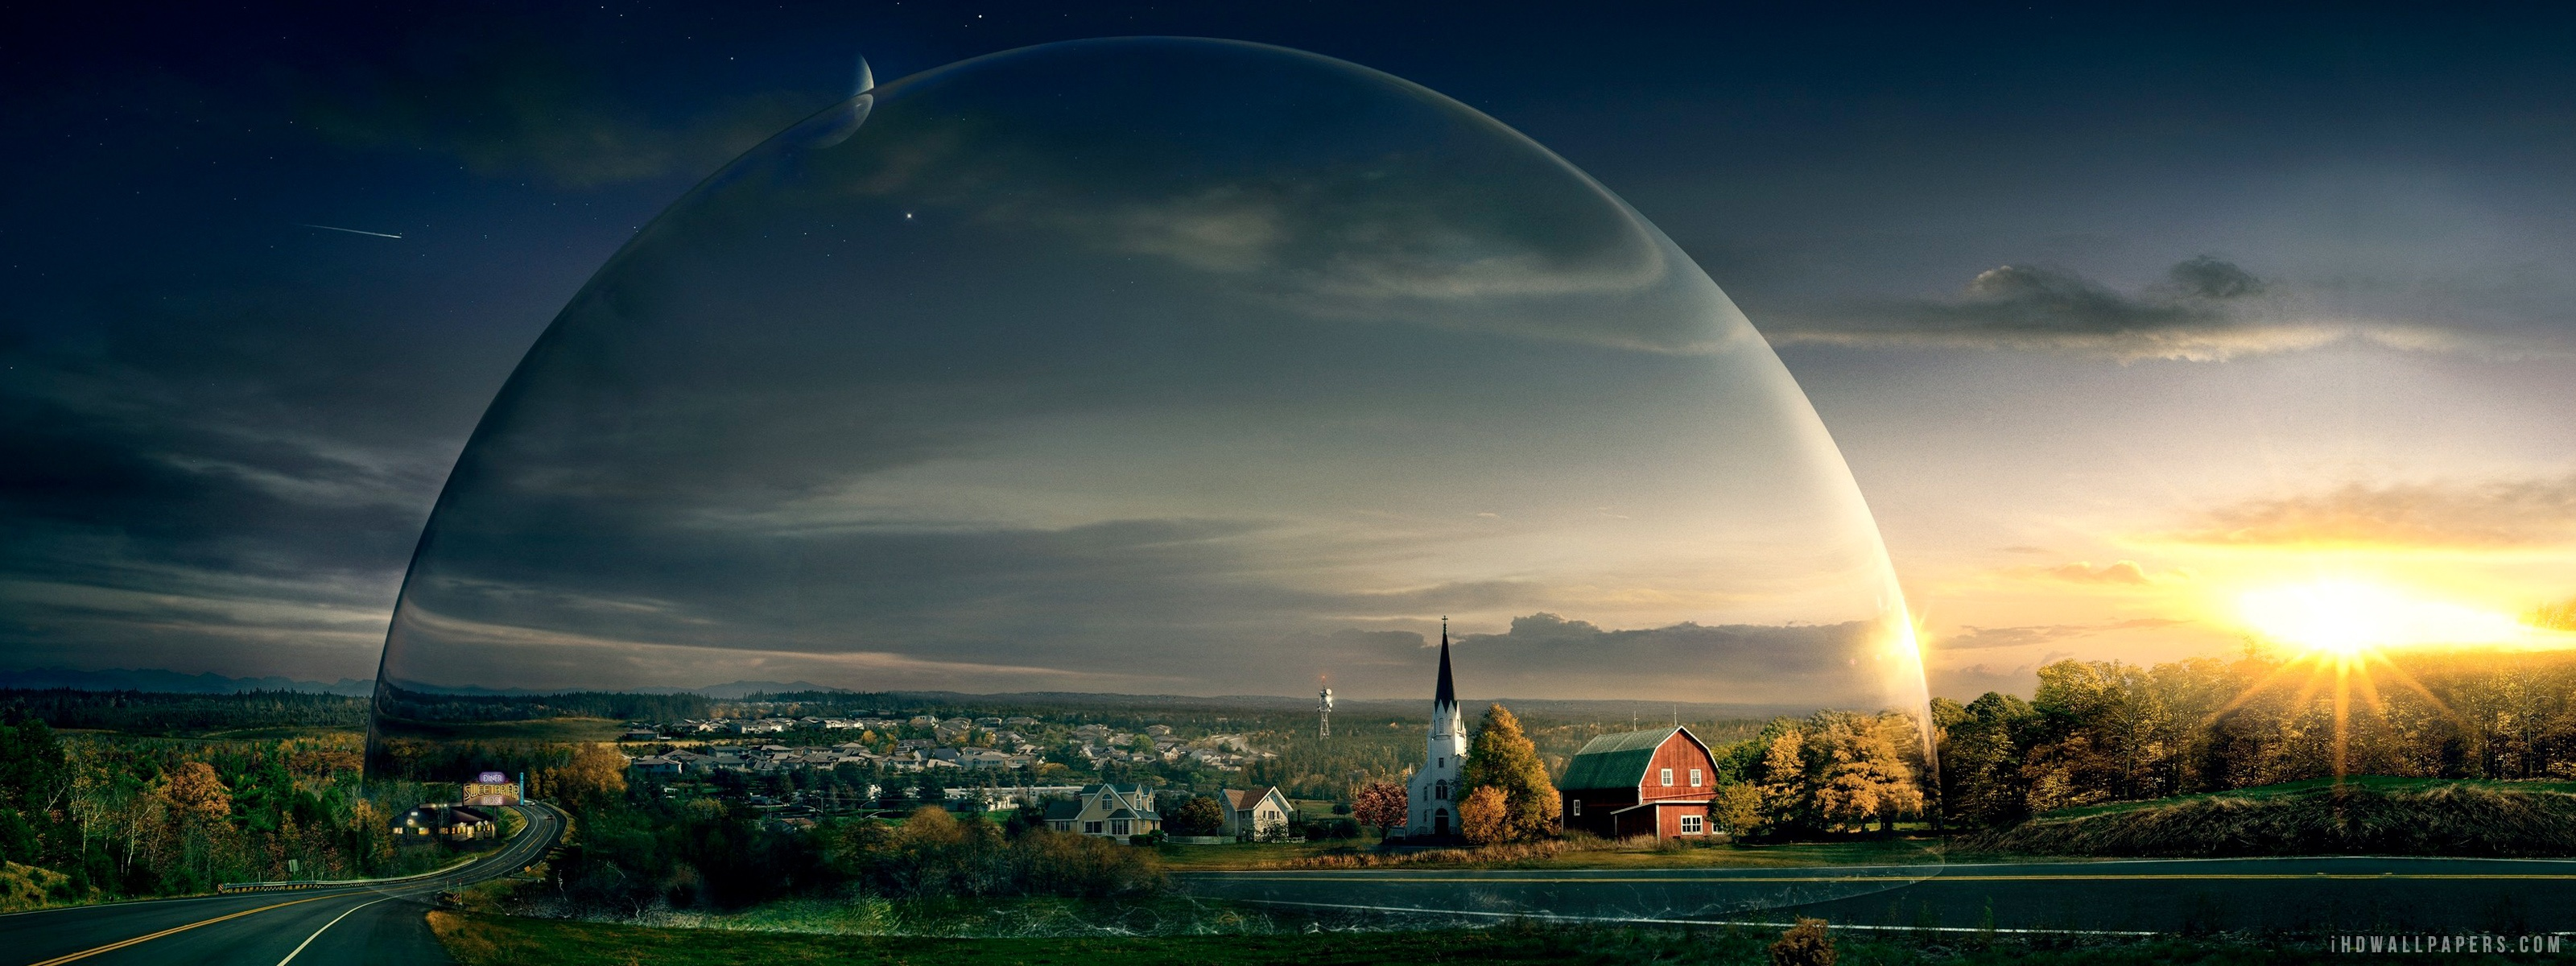 Under the Dome HD Wallpaper   iHD Wallpapers 3200x1200